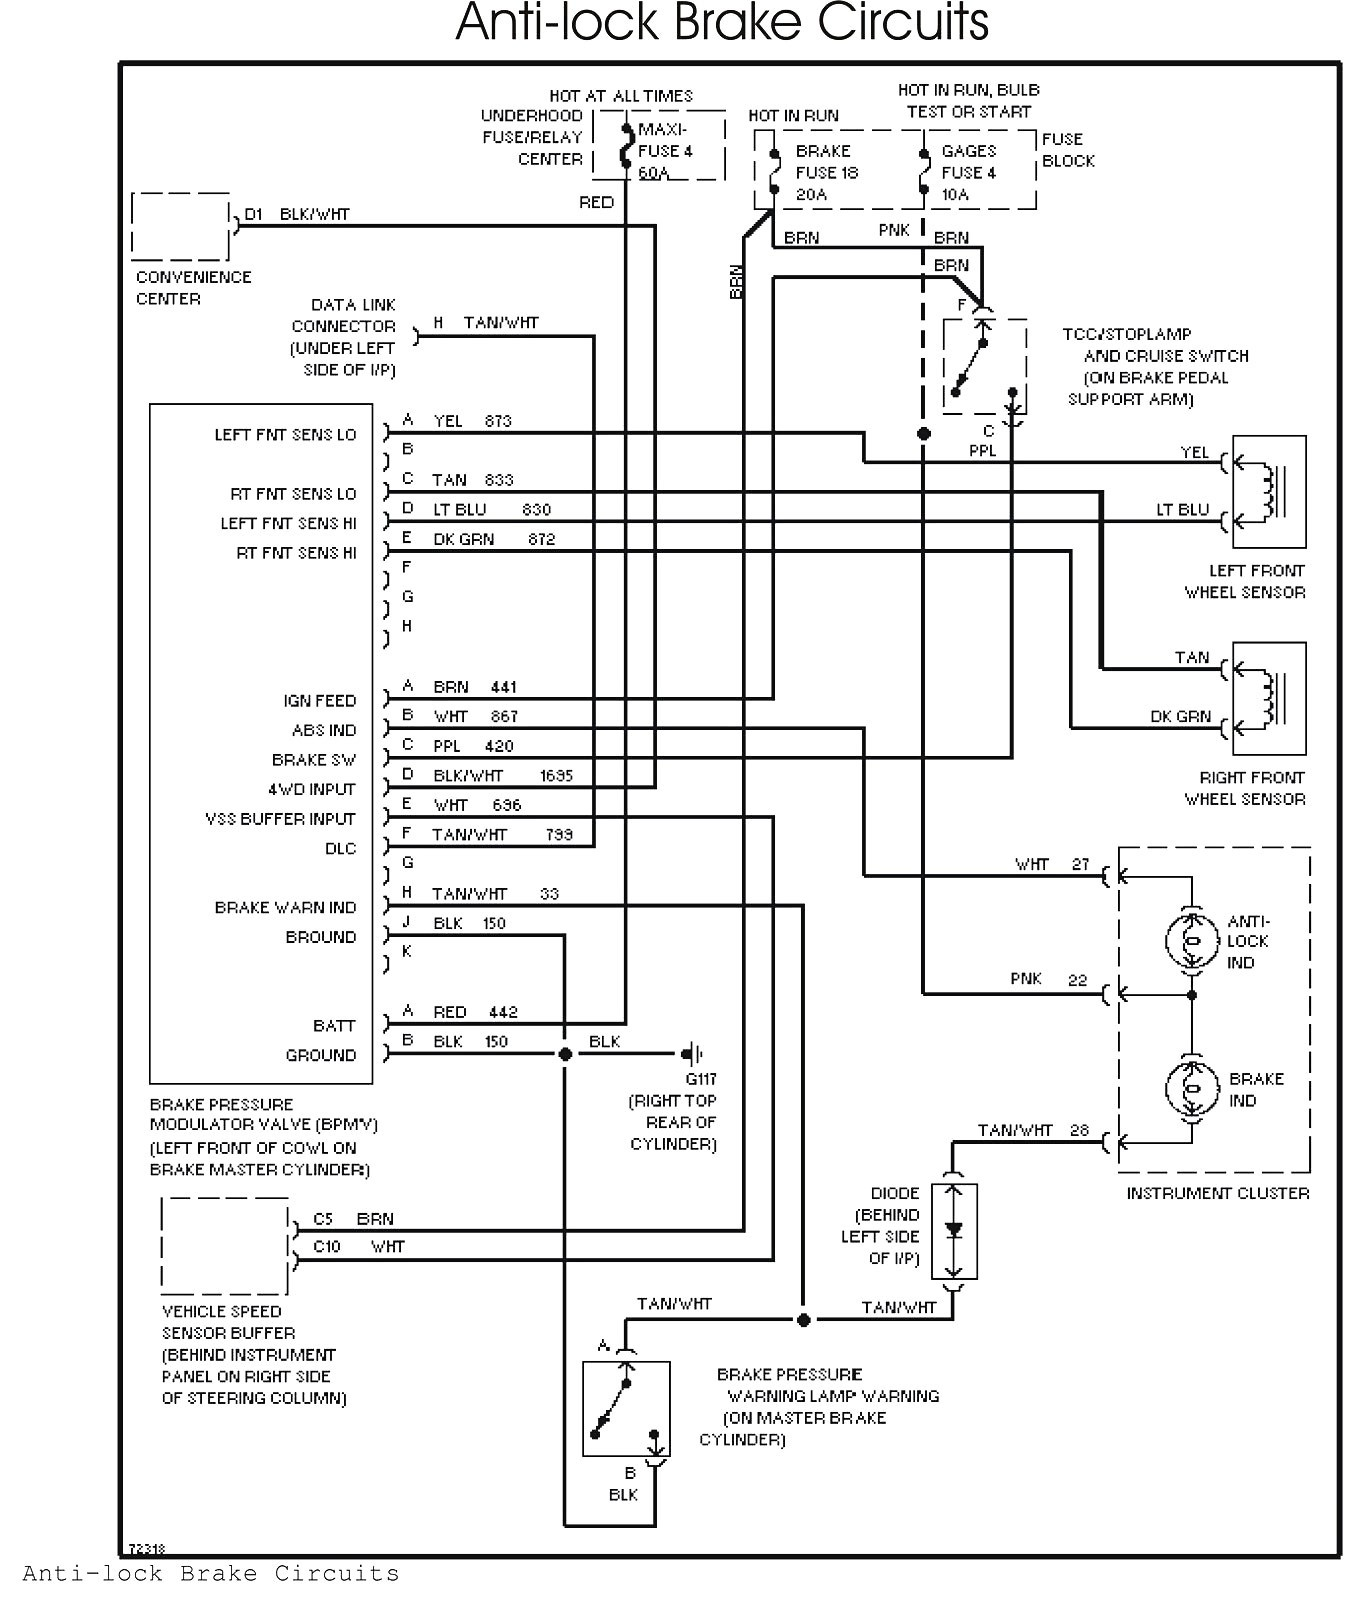 pierce fire truck wiring diagram my wiring diagram rh detoxicrecenze com 79 Chevy Truck Wiring Diagram 96 Chevy Truck Wiring Diagram